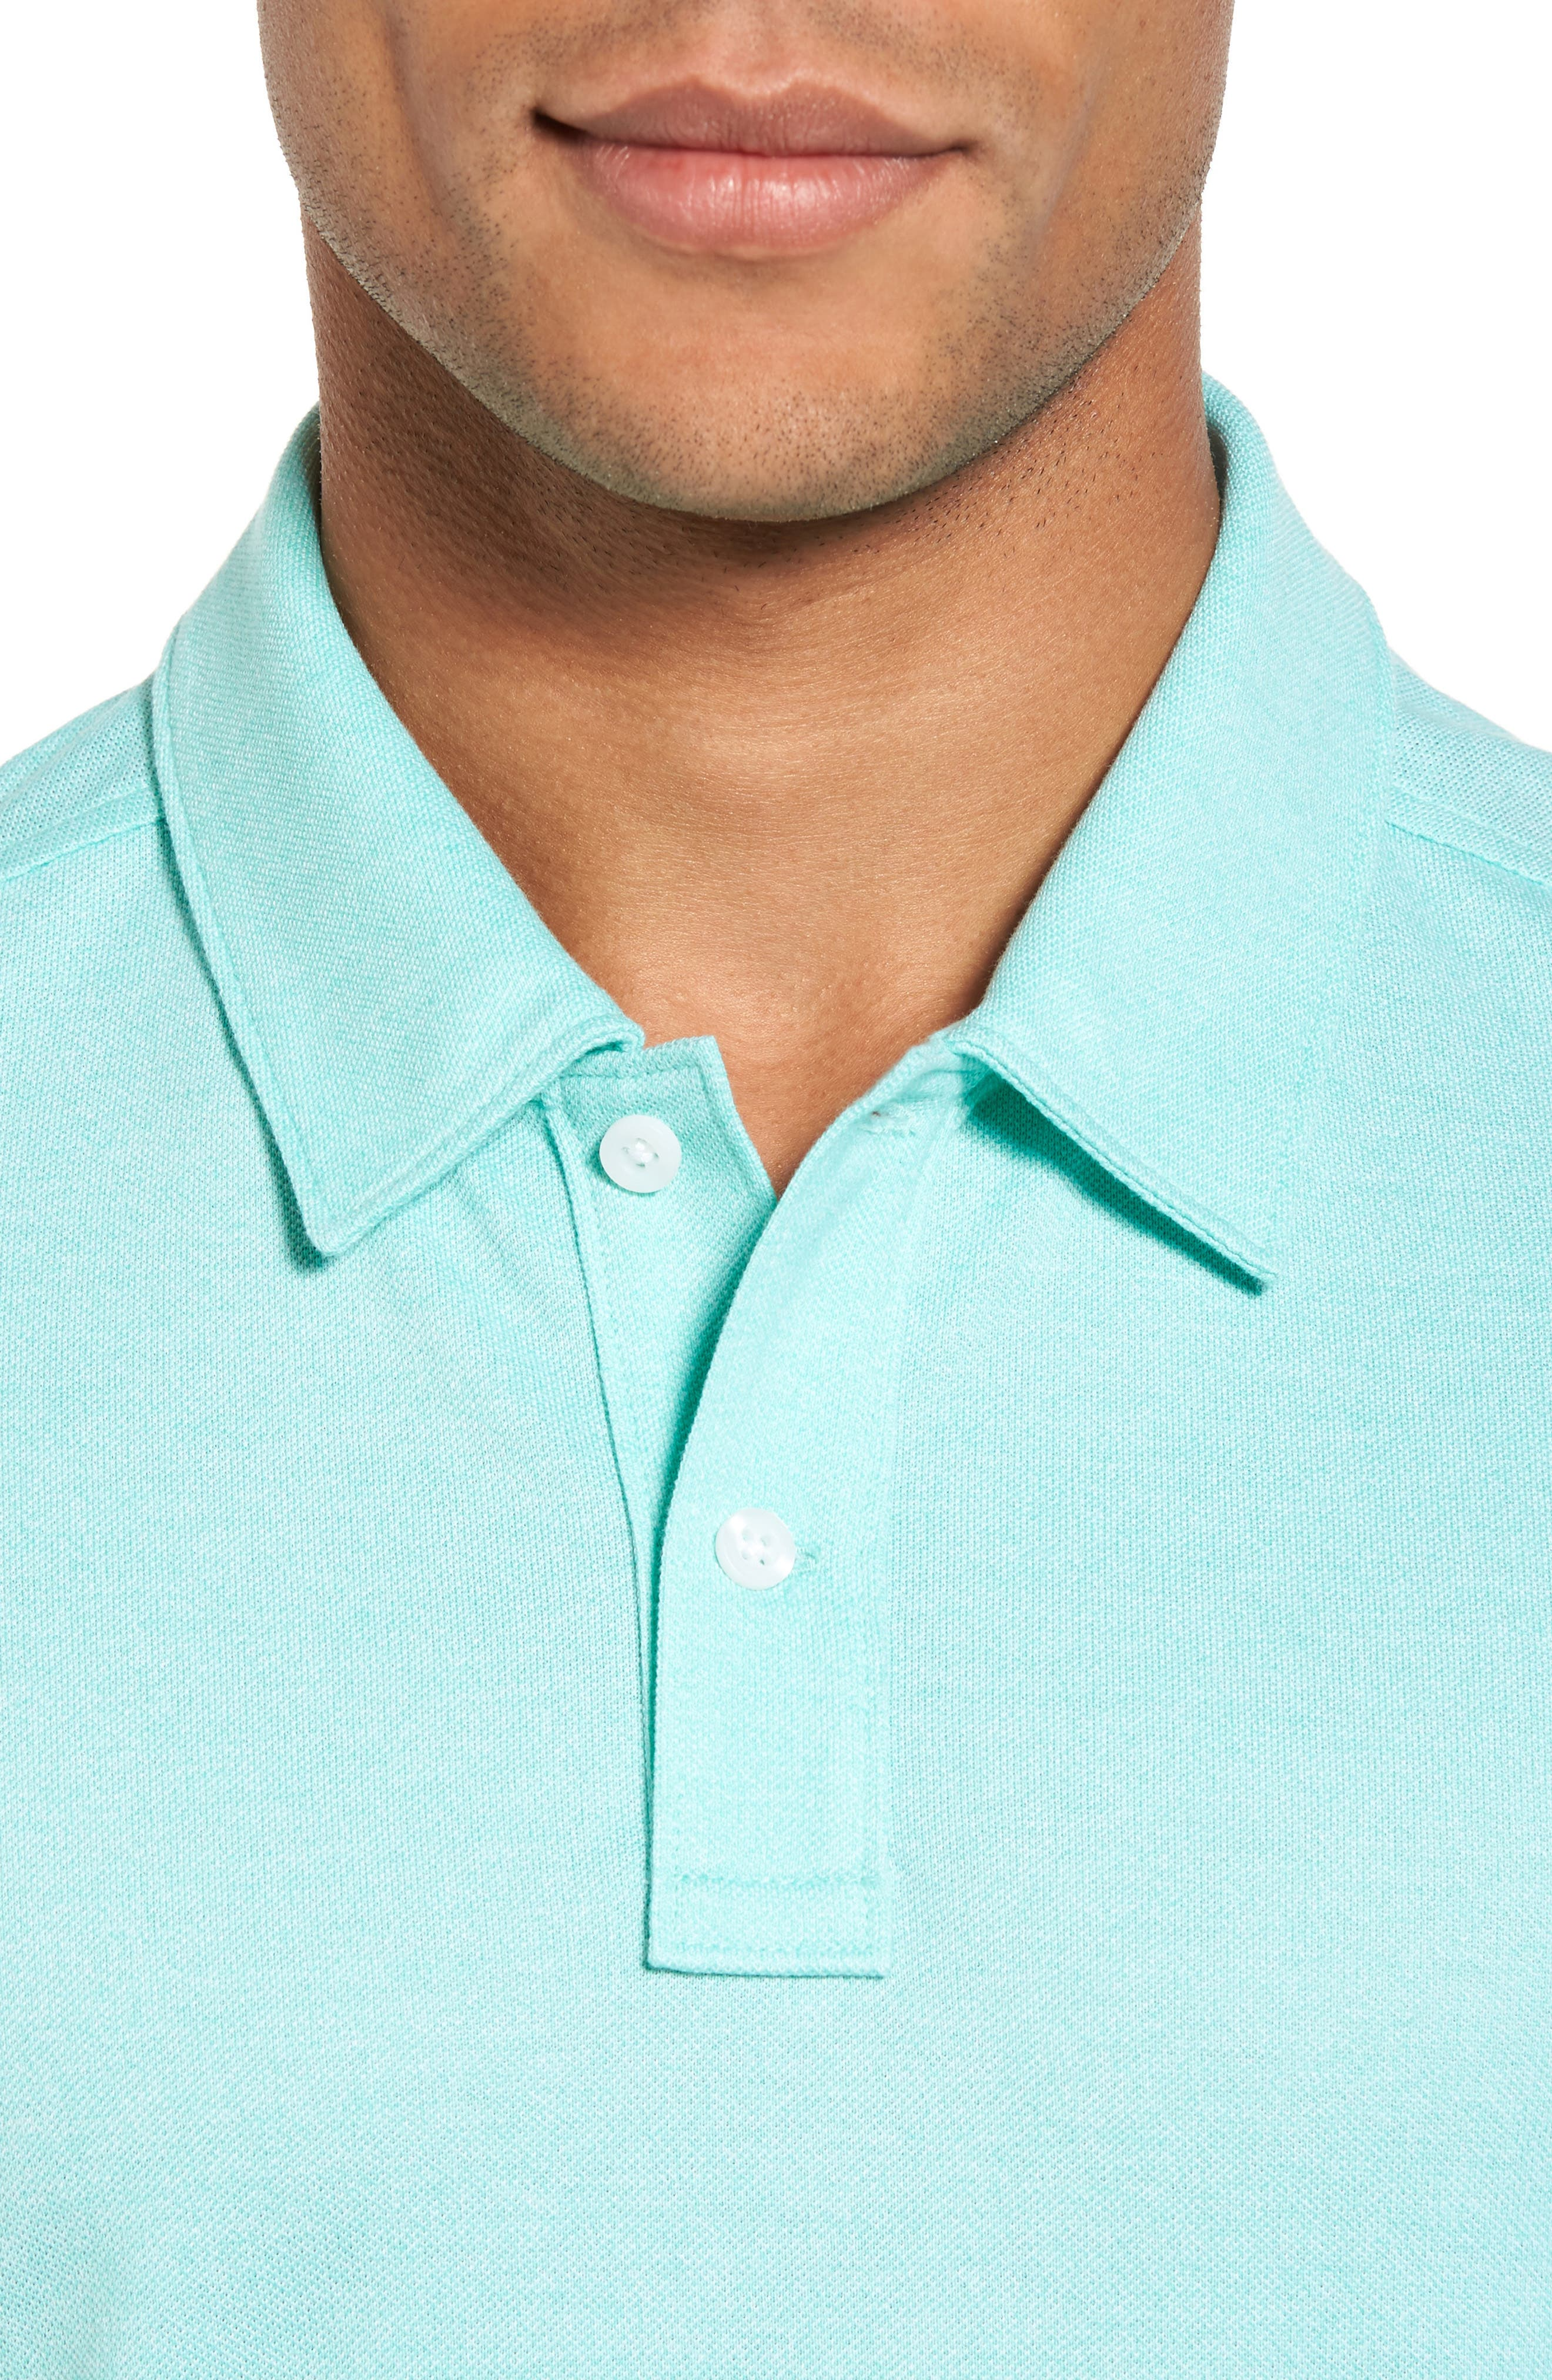 Regular Fit Polo,                             Alternate thumbnail 4, color,                             TEAL GLOSS